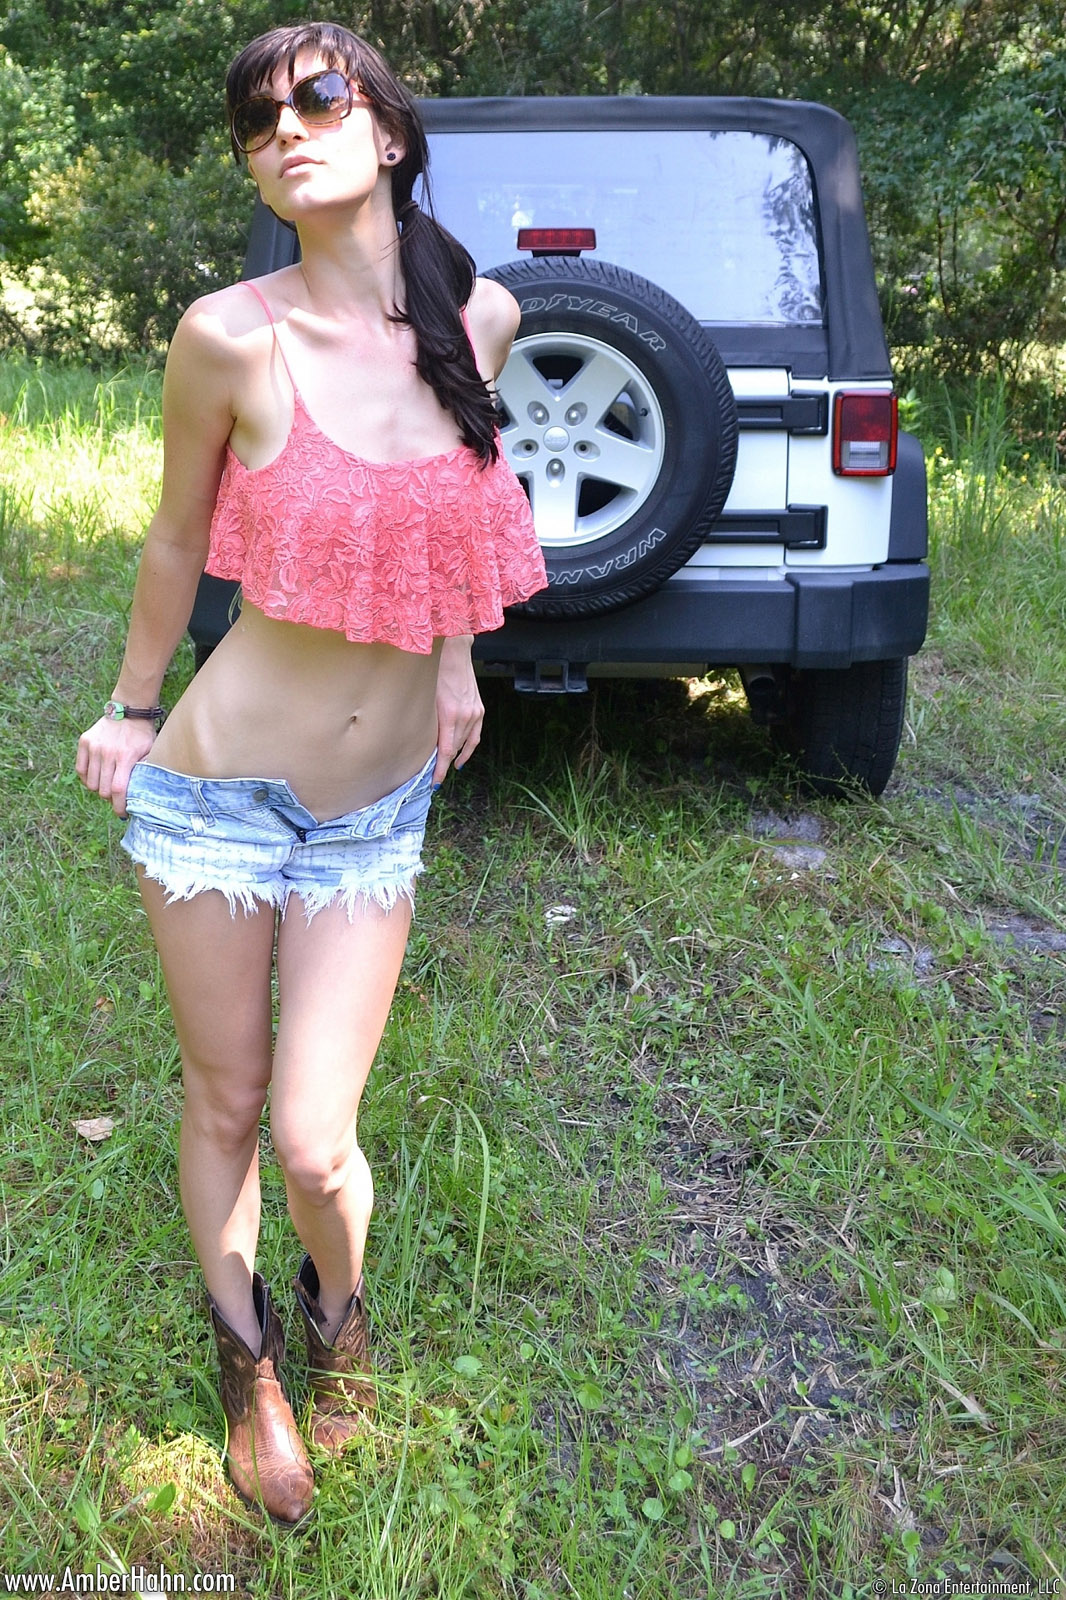 Jeeps and nudes, hottest teen nude online